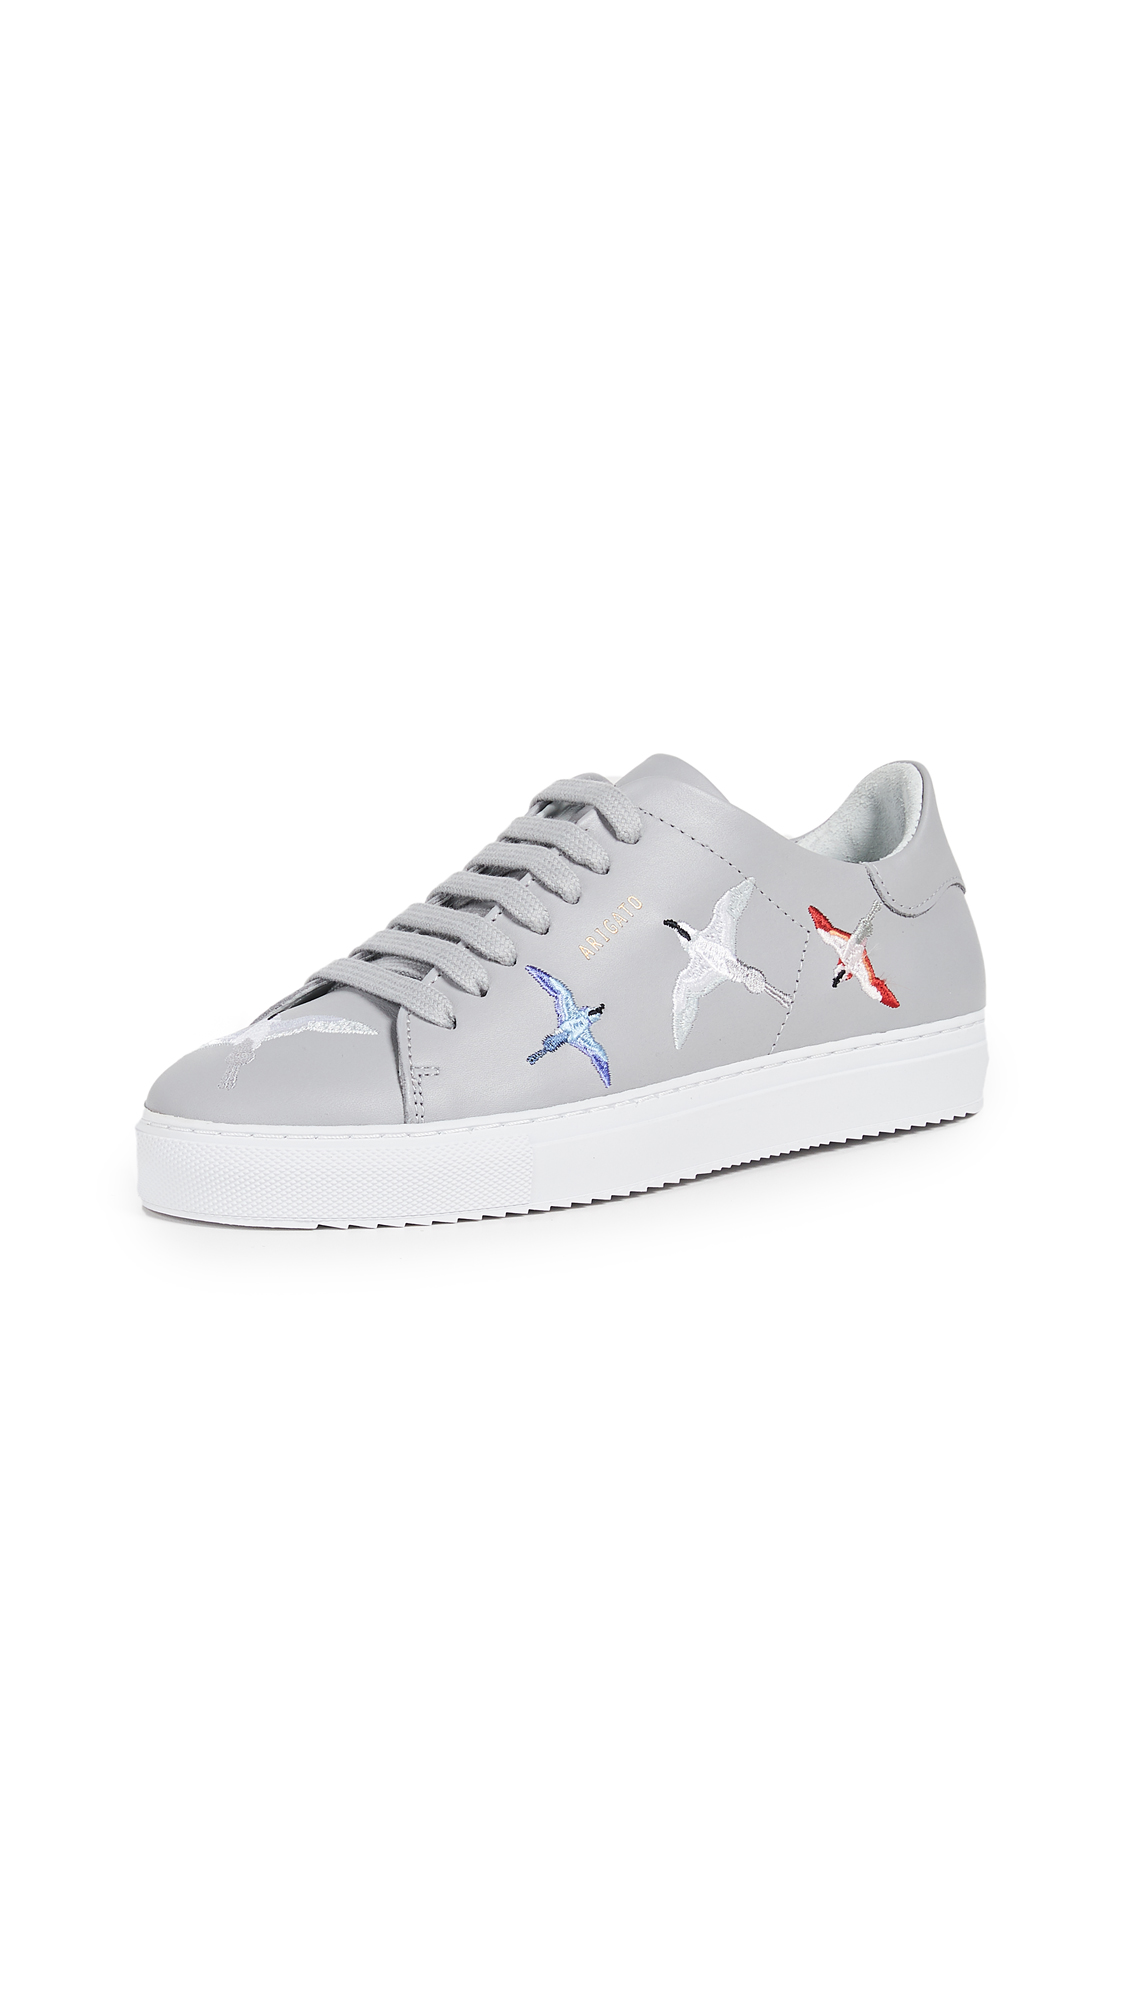 Axel Arigato Clean 90 Sneakers - Light Grey